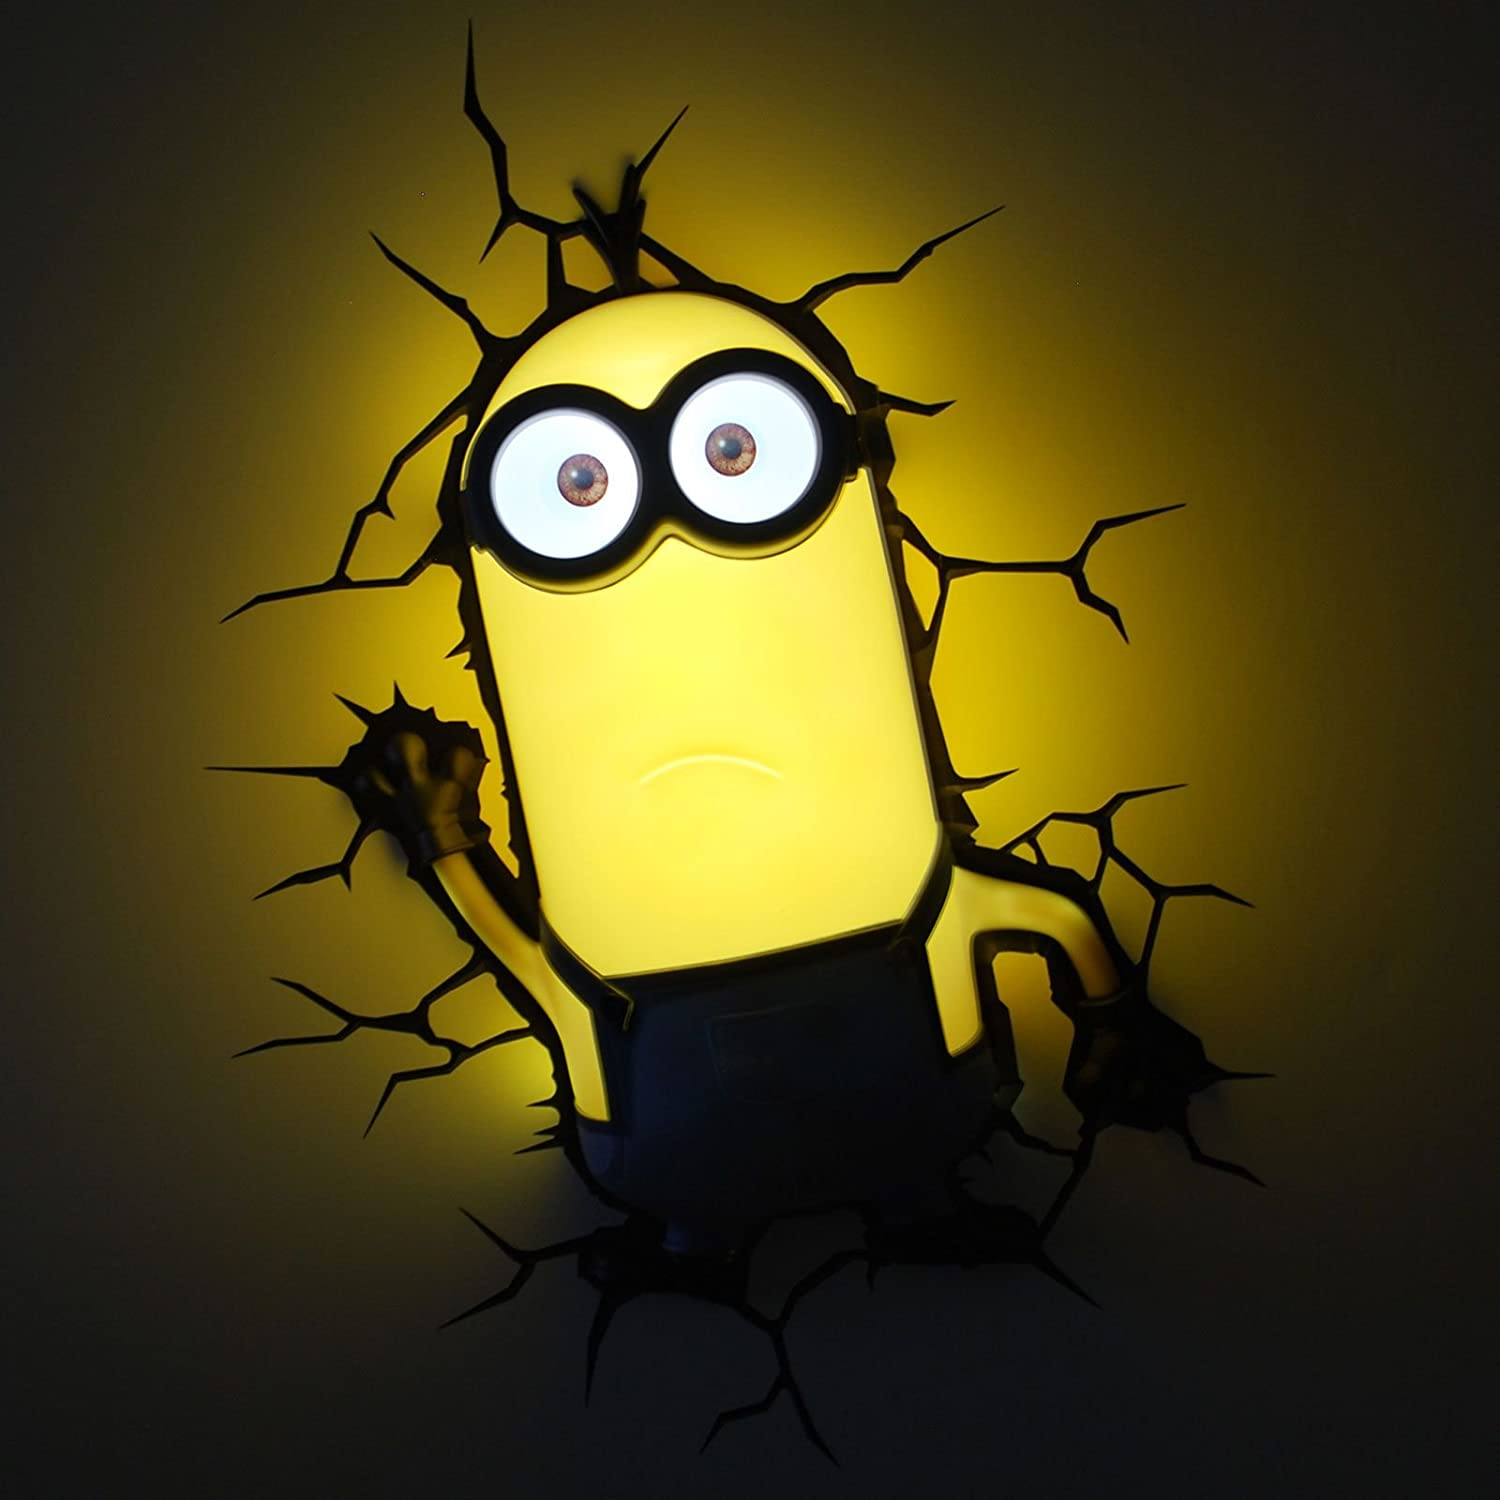 Amazon.com: Minions Kevin 3D Deco LED Wall Light: Home & Kitchen